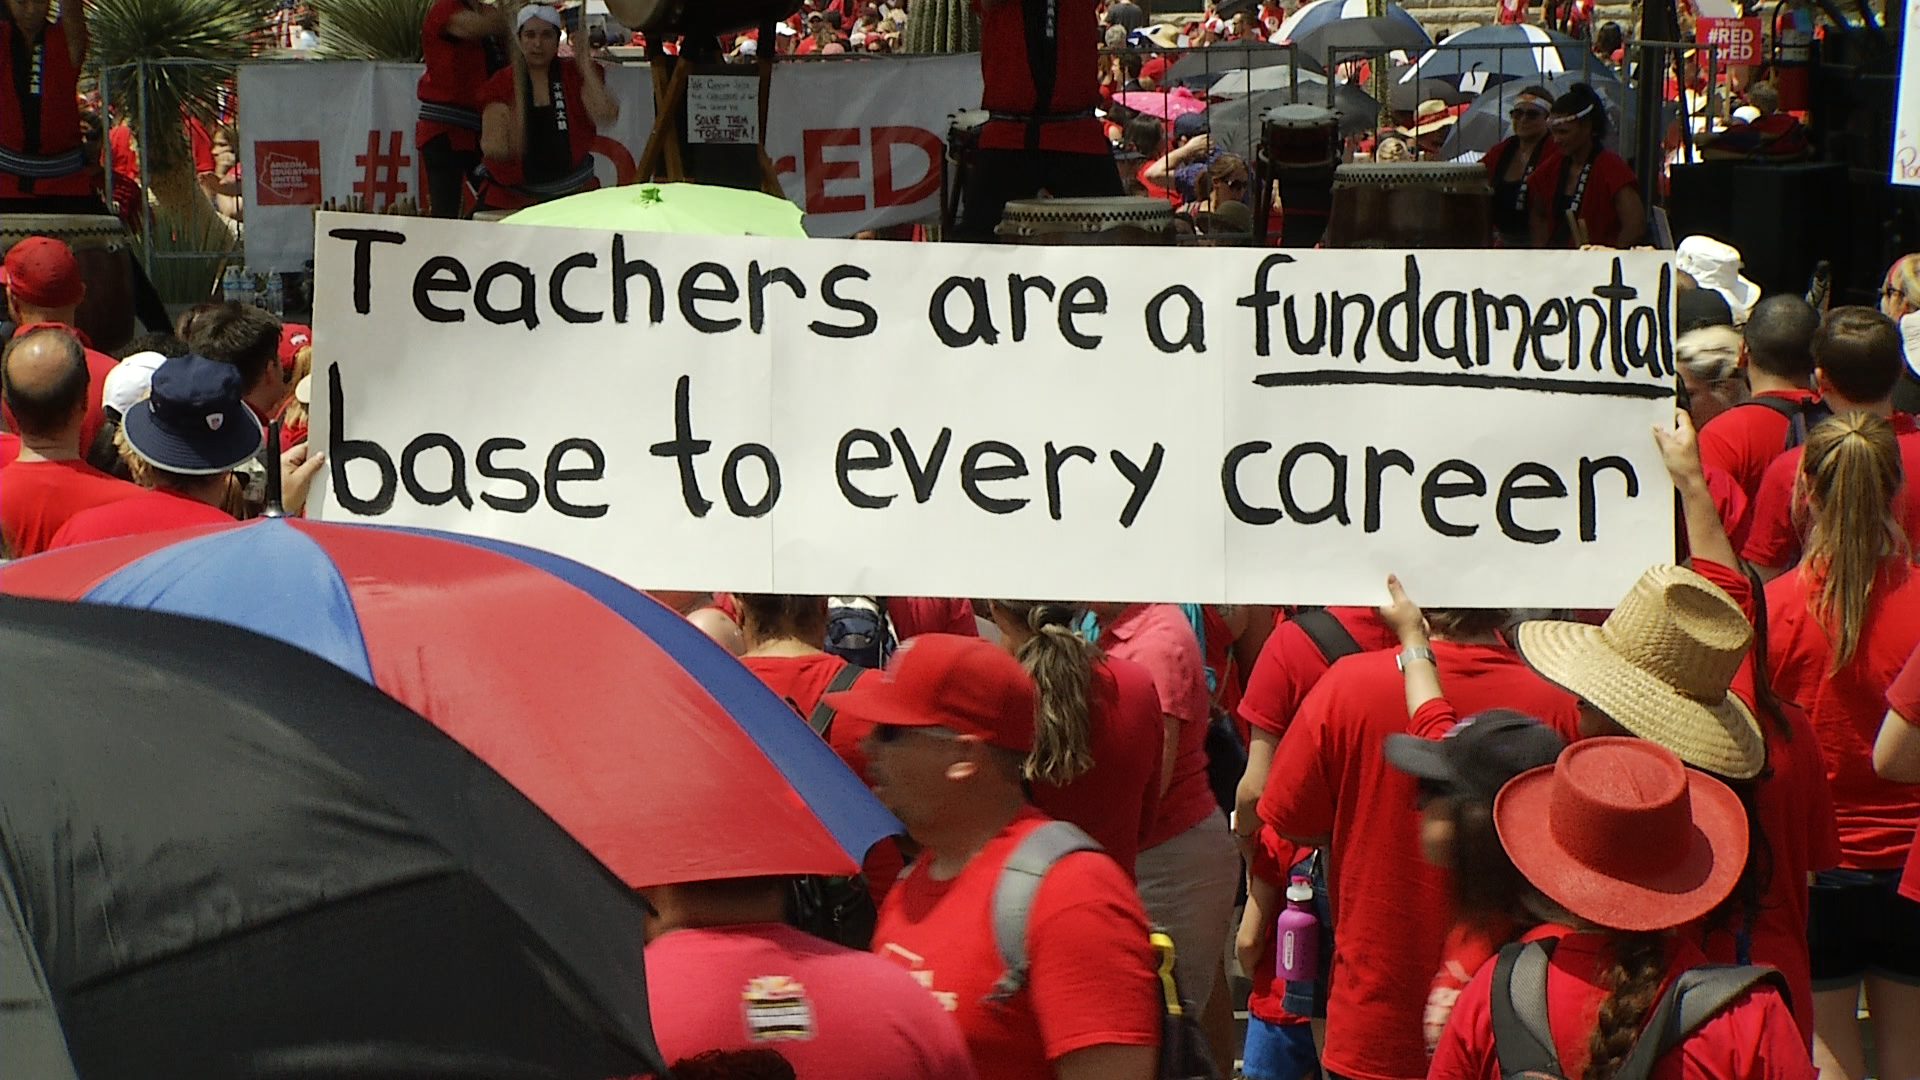 Demonstrators with the Red for Ed movement hold a banner supporting educators outside of the Capitol in Phoenix.